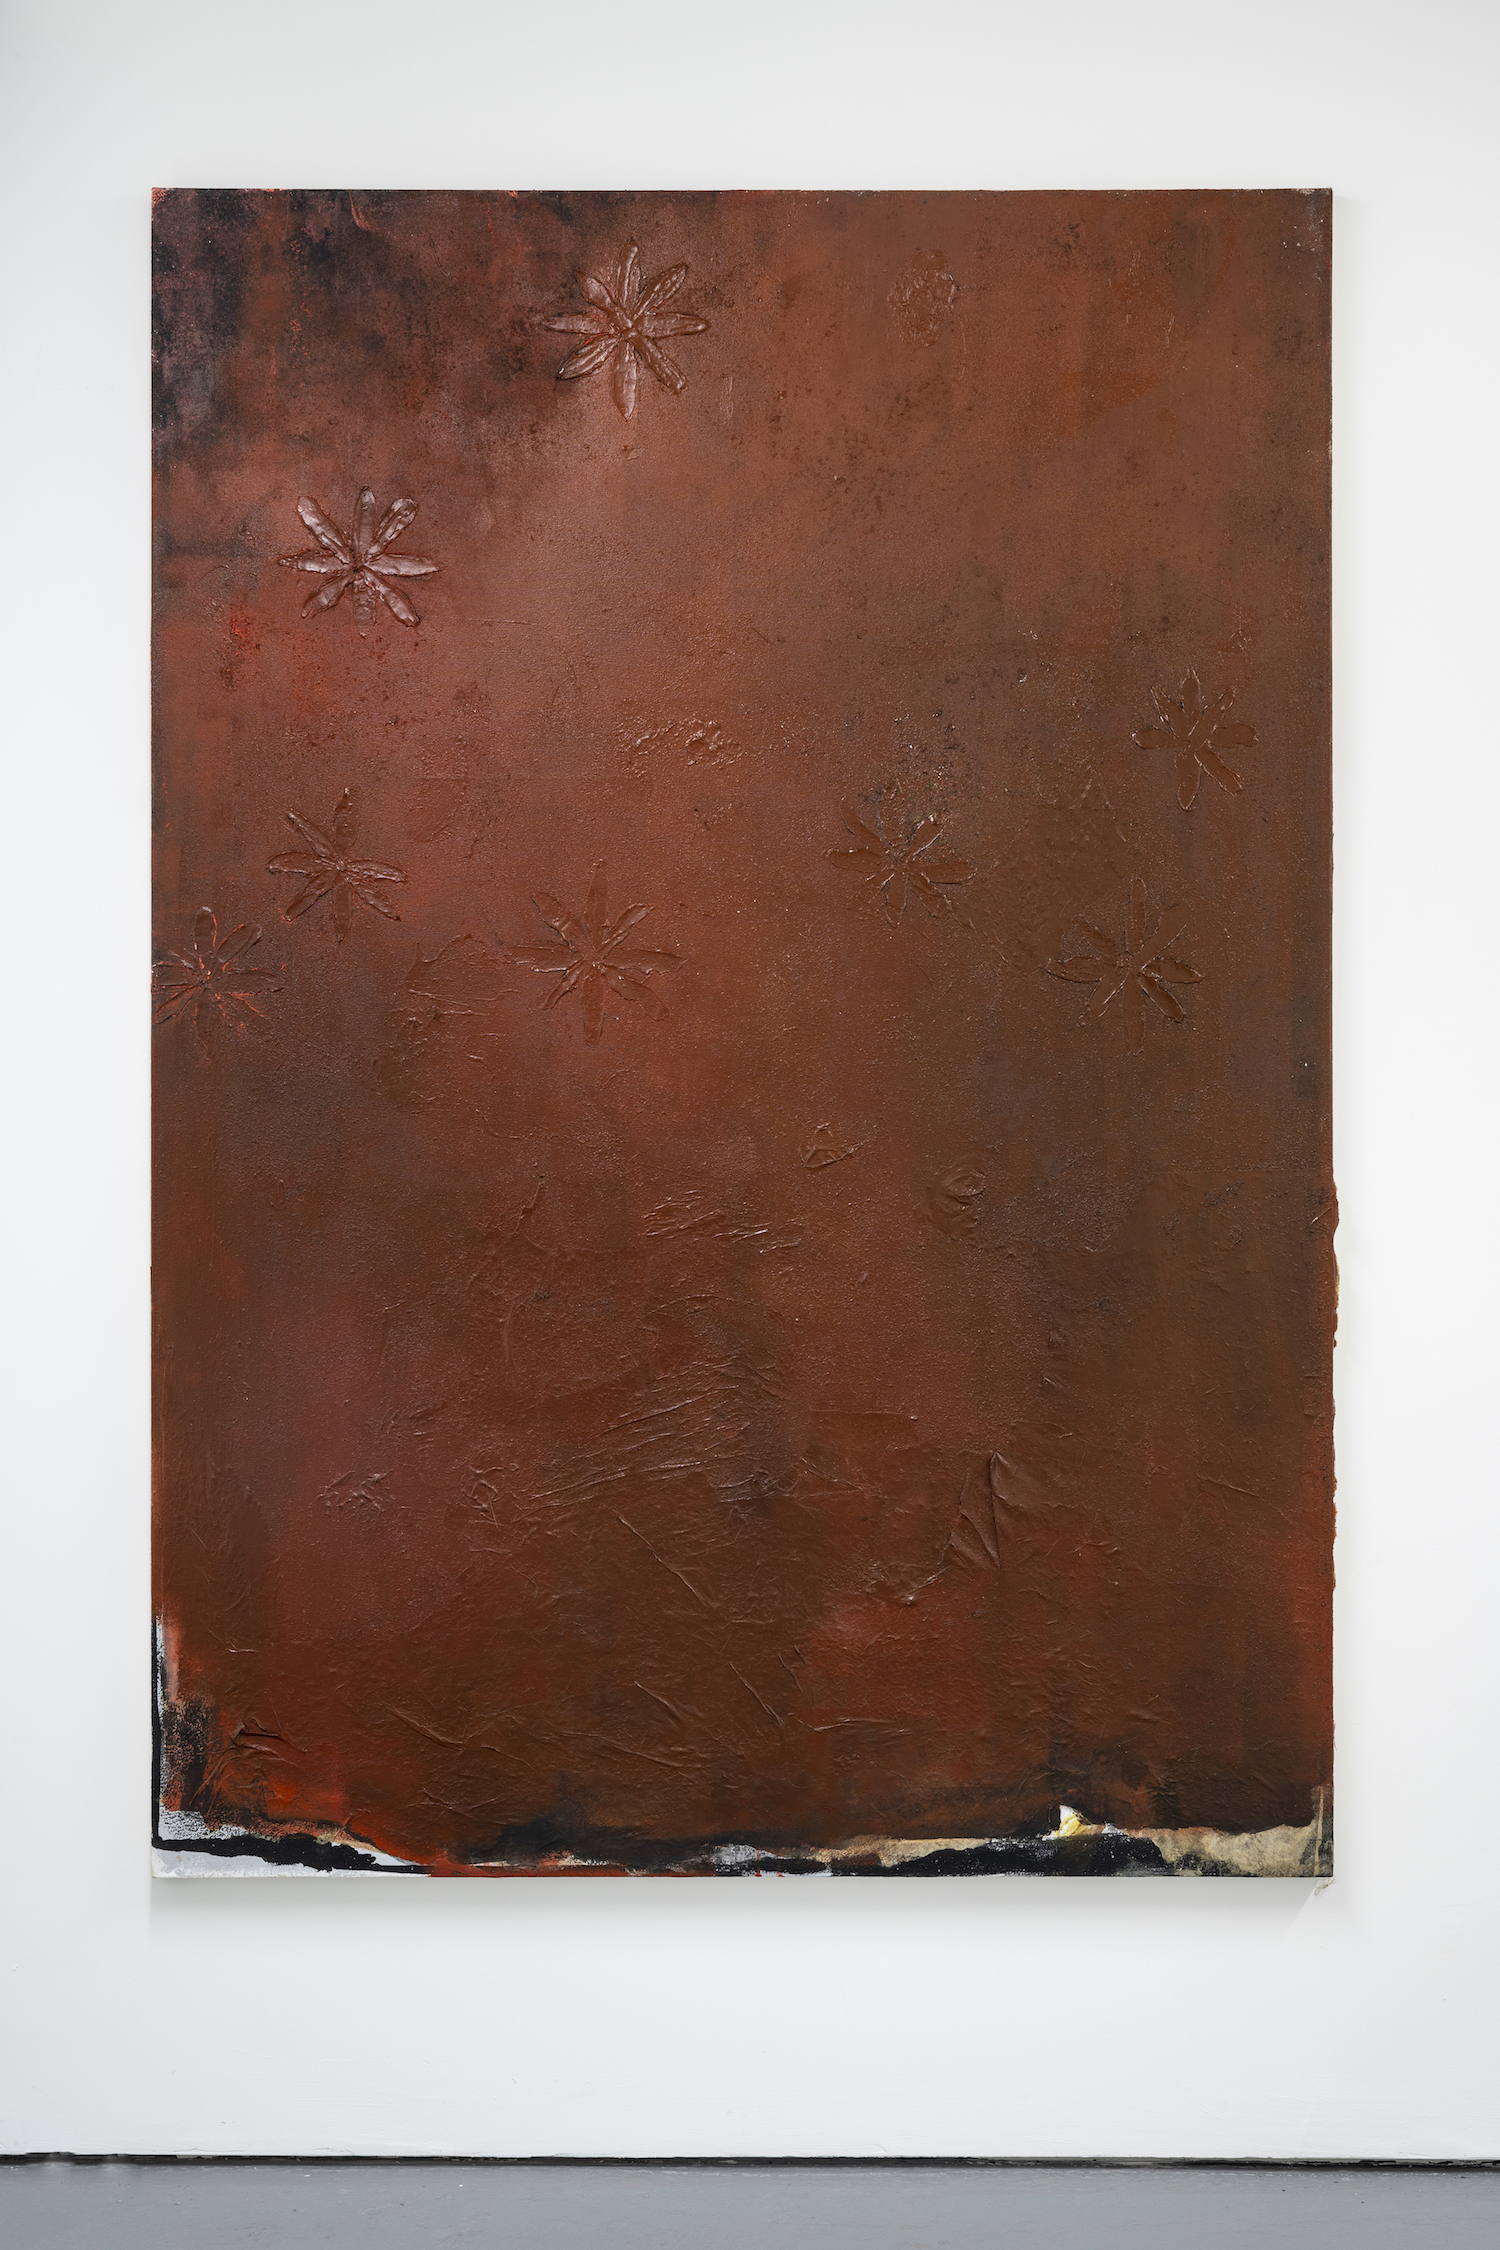 Luca Longhi, 'Lontano Lontano e tanto tempo fà' 2020. Oil, acrylic, gesso, white emulsion, paper, sawdust and granite dust on canvas, 180 x 127cm. Photo credit: Damian Griffiths